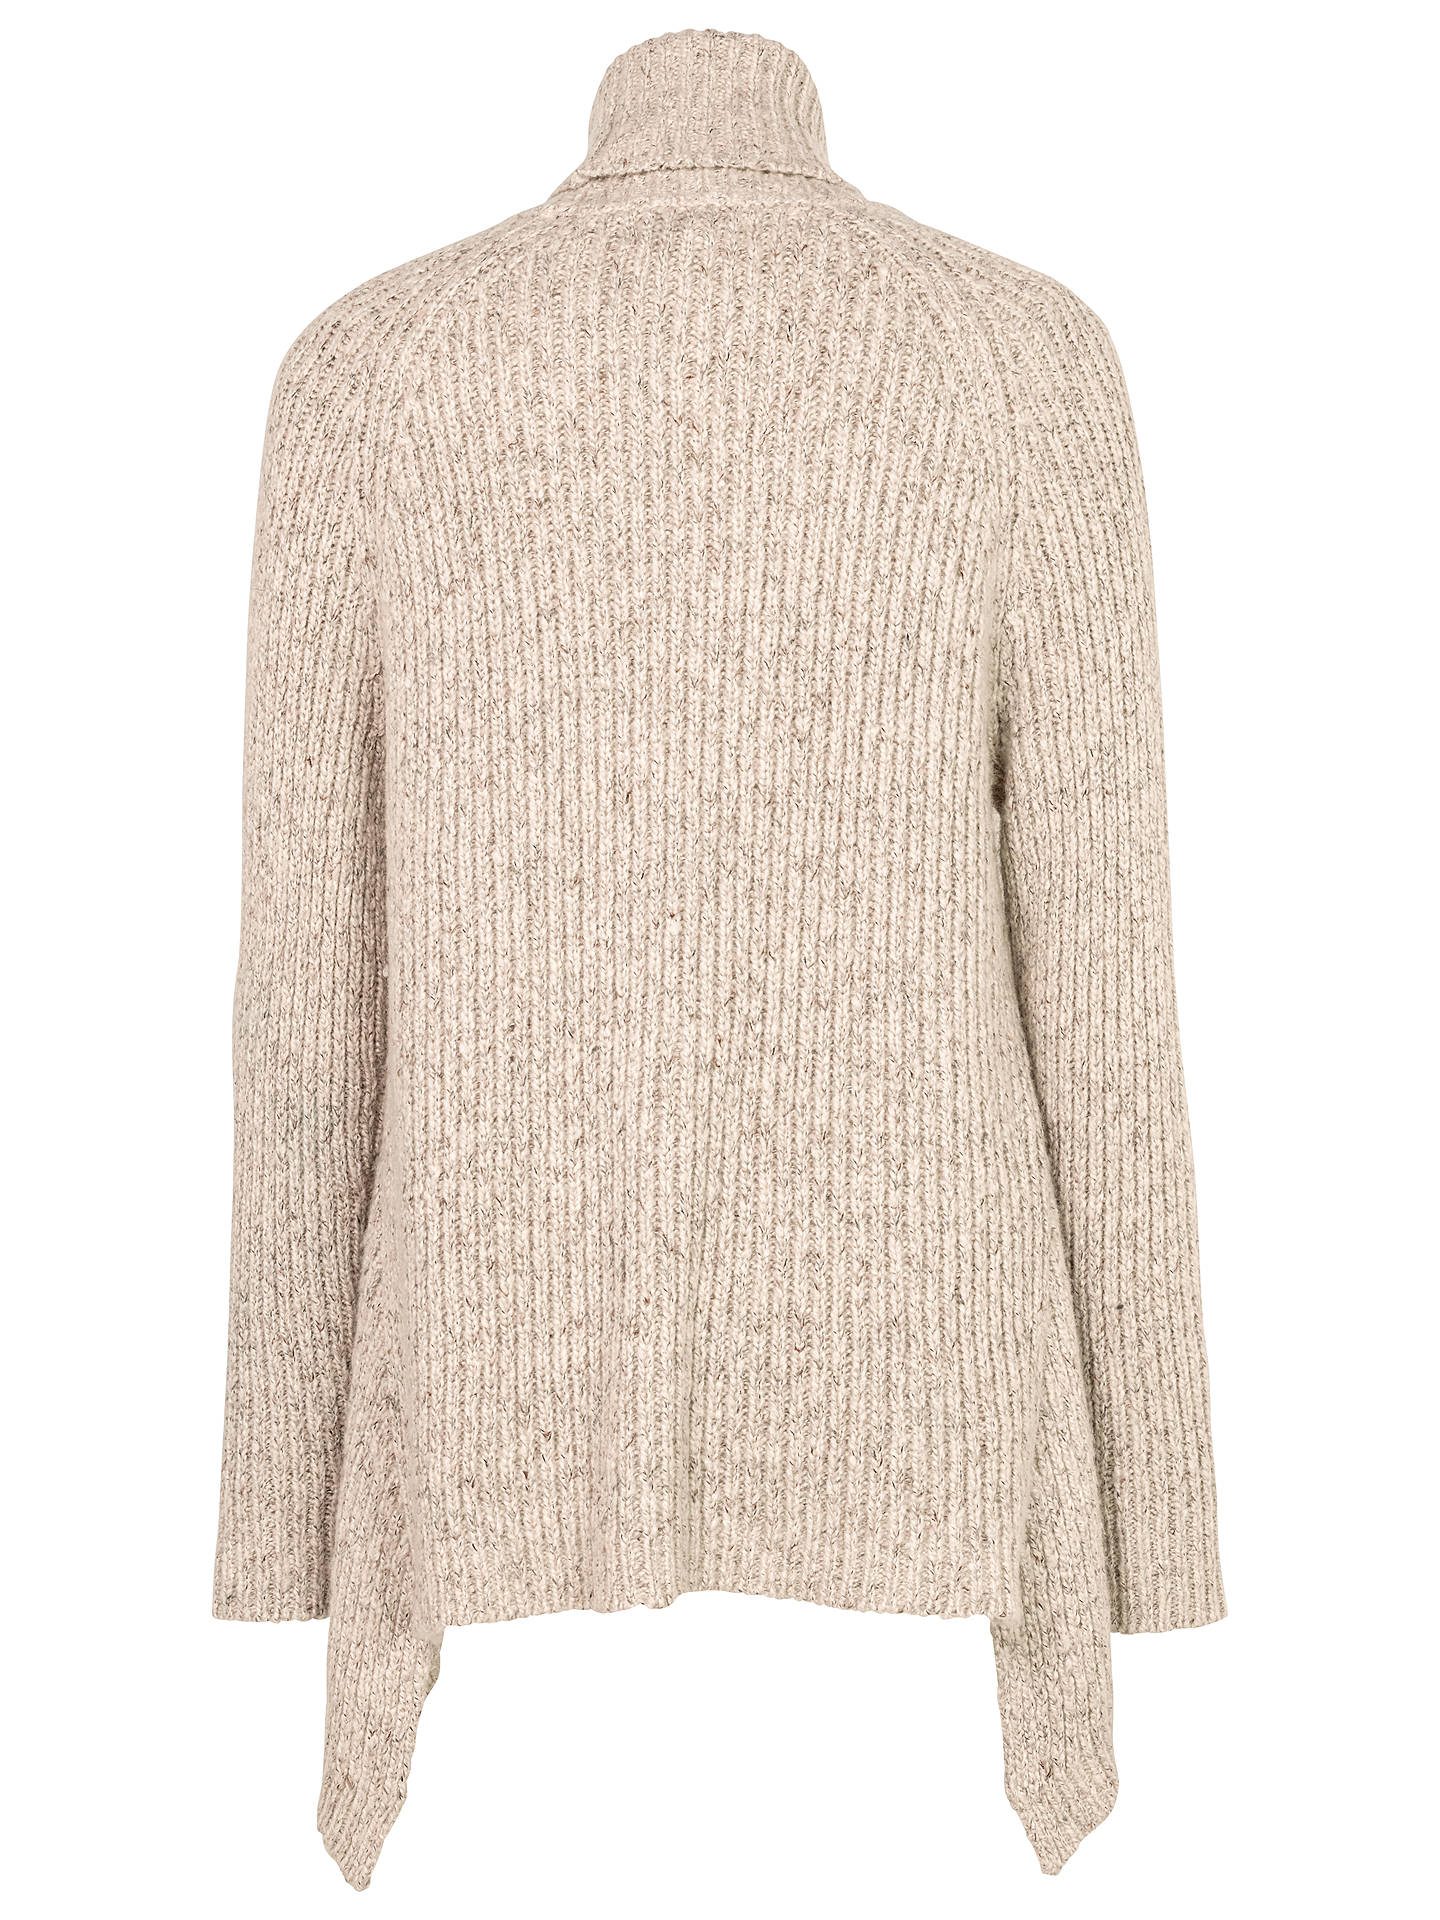 BuyFat Face Evie Roll Neck Jumper, Ivory, 6 Online at johnlewis.com